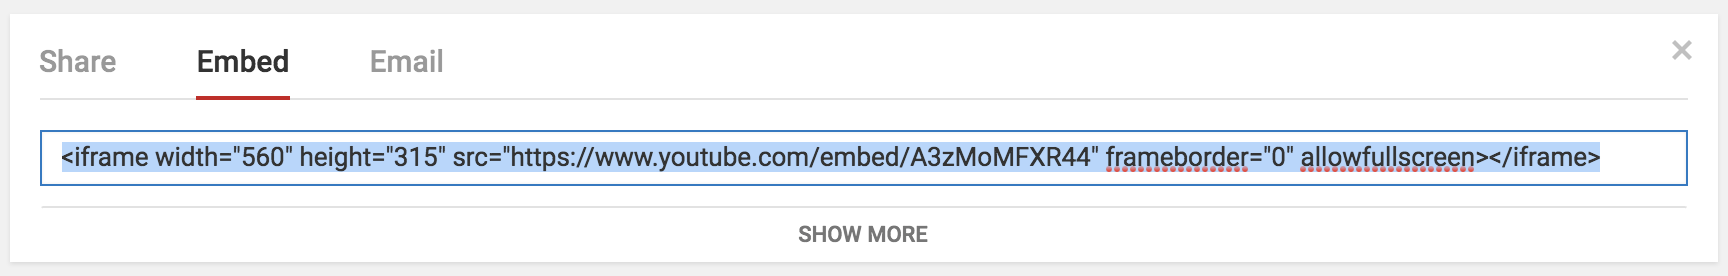 youtube video embed code